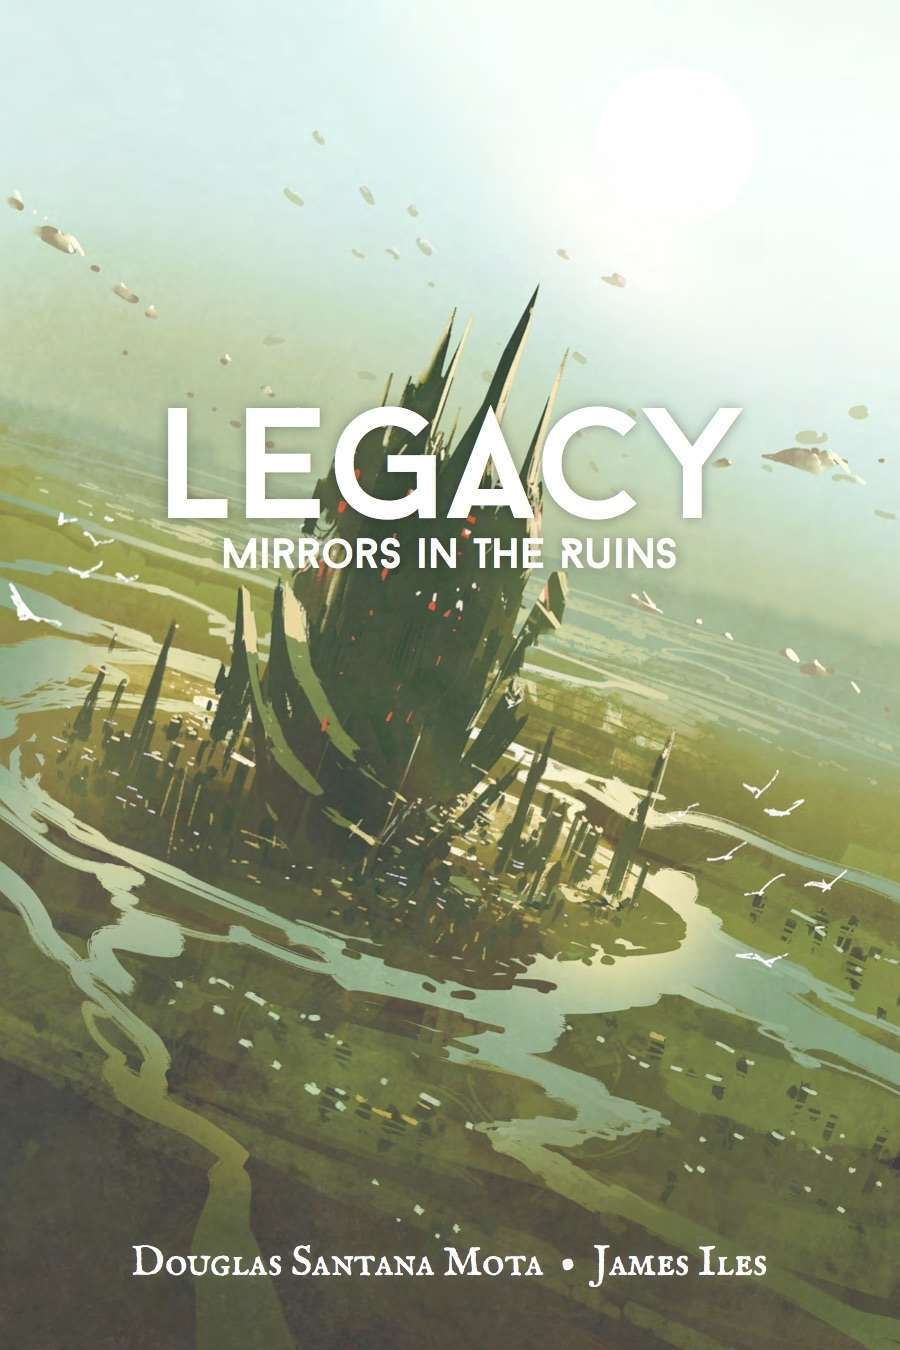 Legacy: Mirrors in the Ruins